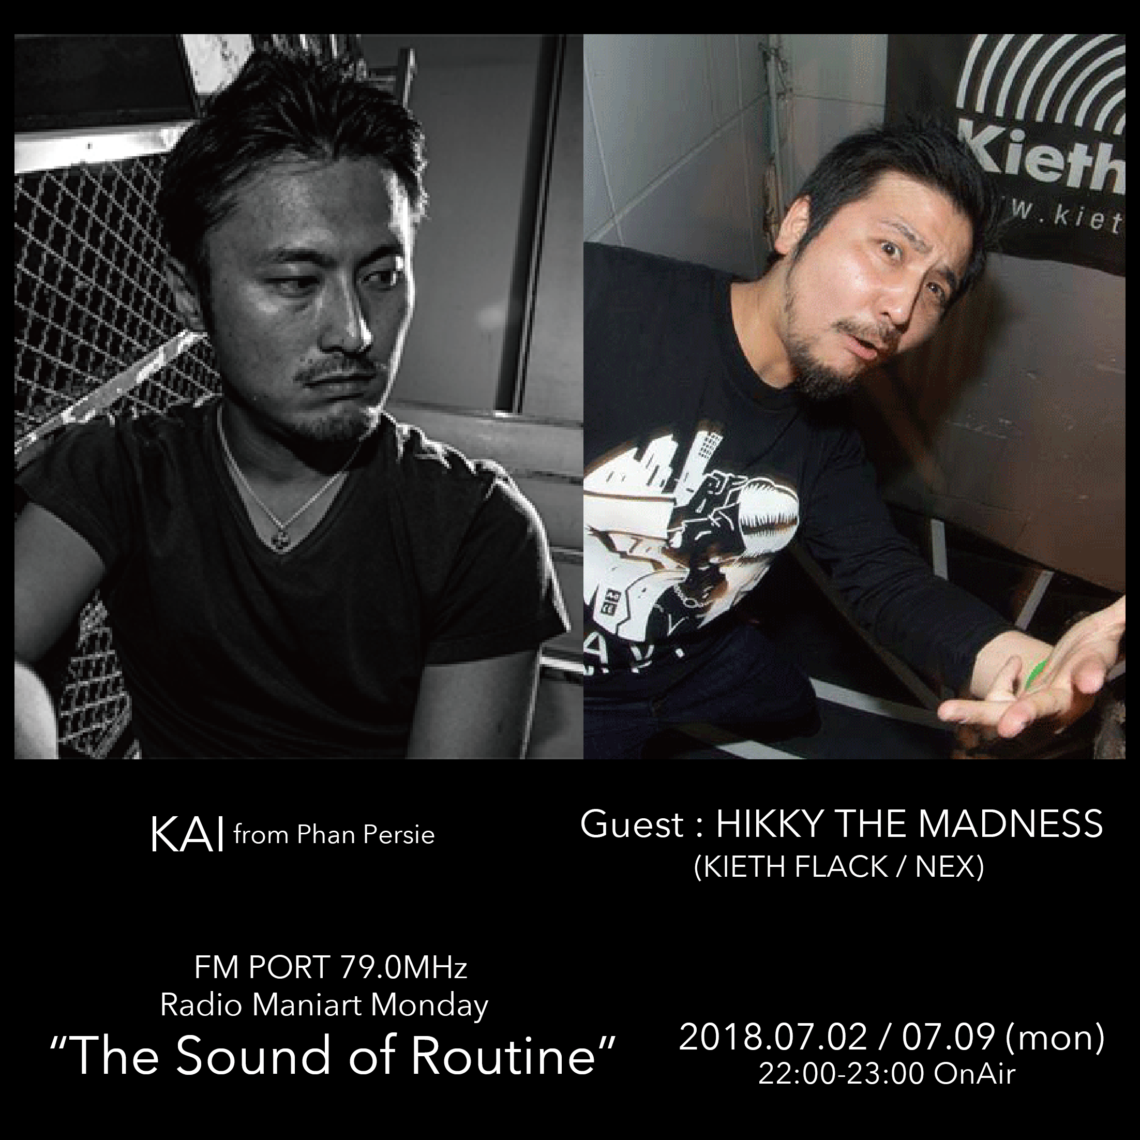 2018.7.2 MON, 9 MON – KAI : Navigator on FM PORT / the Sound of Routine – Guest: HIKKY THE MADNESS